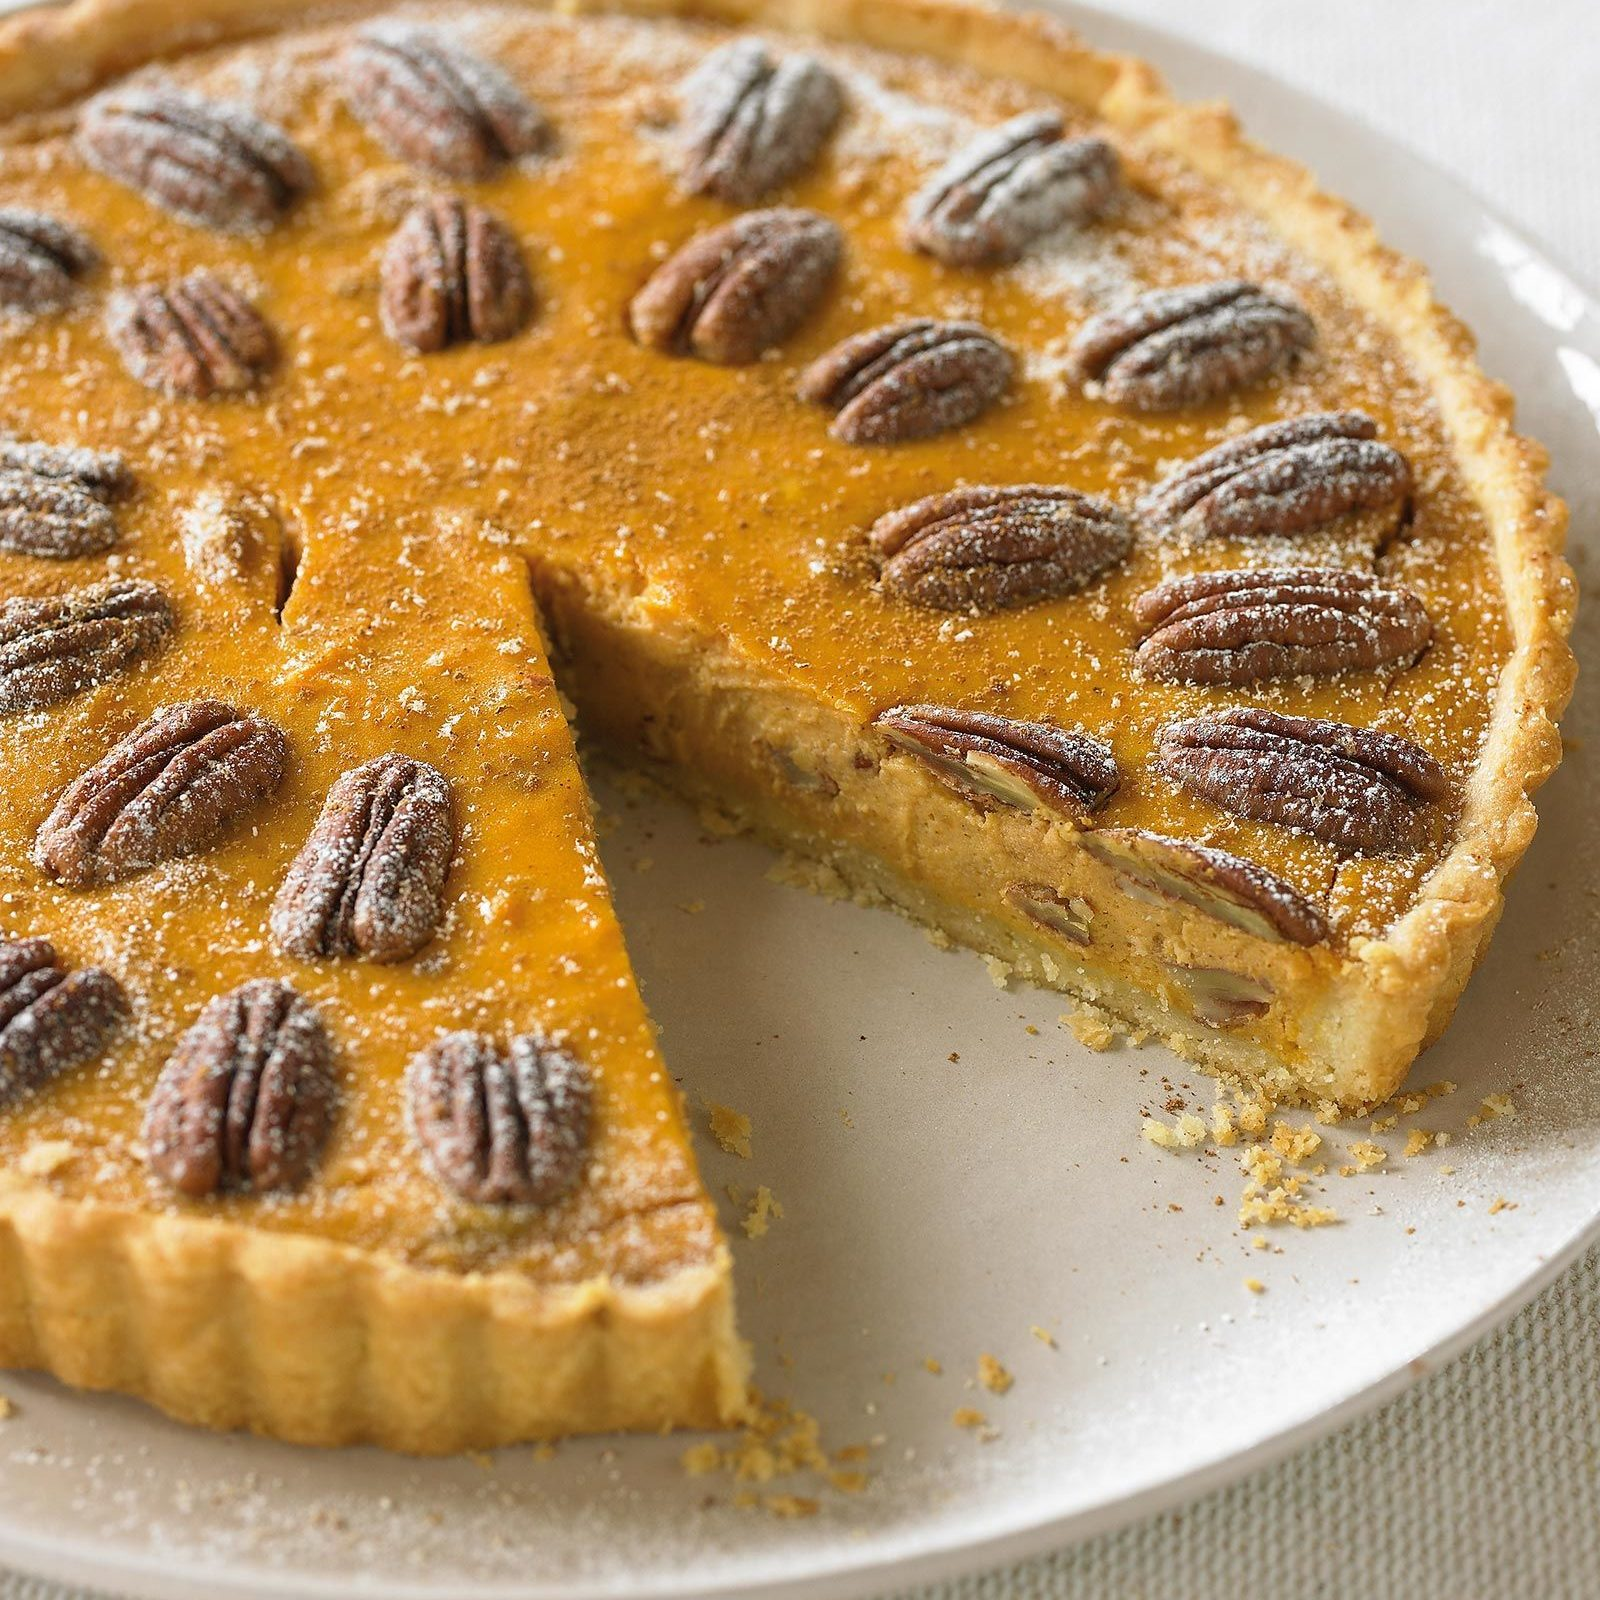 Tesco Organic – Sweet potato pie